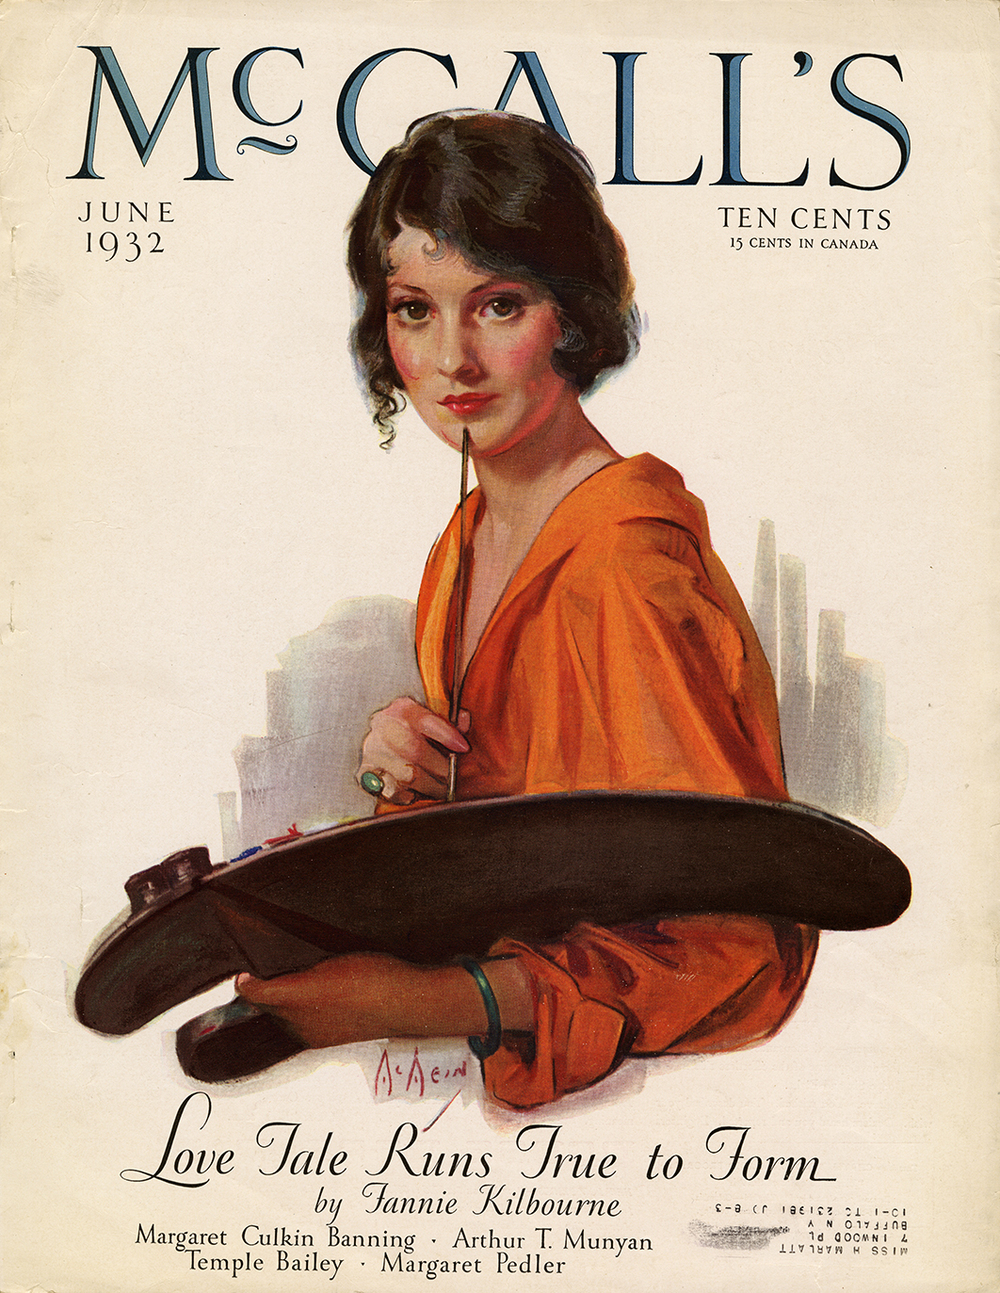 Neysa McMein, Self Portrait cover illustration for McCall's, June 1932.